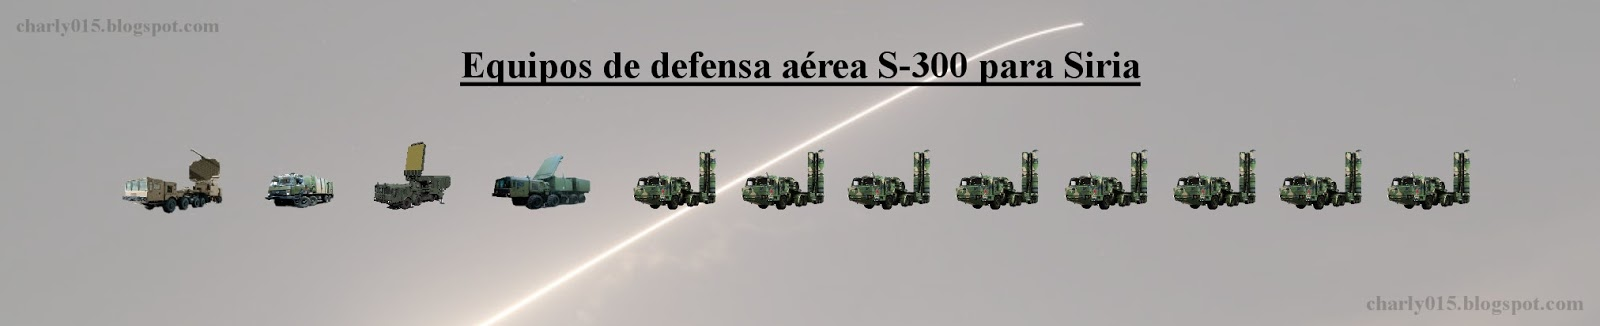 Syrian Air Defence Force - Page 3 Siria%2Bs-400%2Bbatall%25C3%25B3n